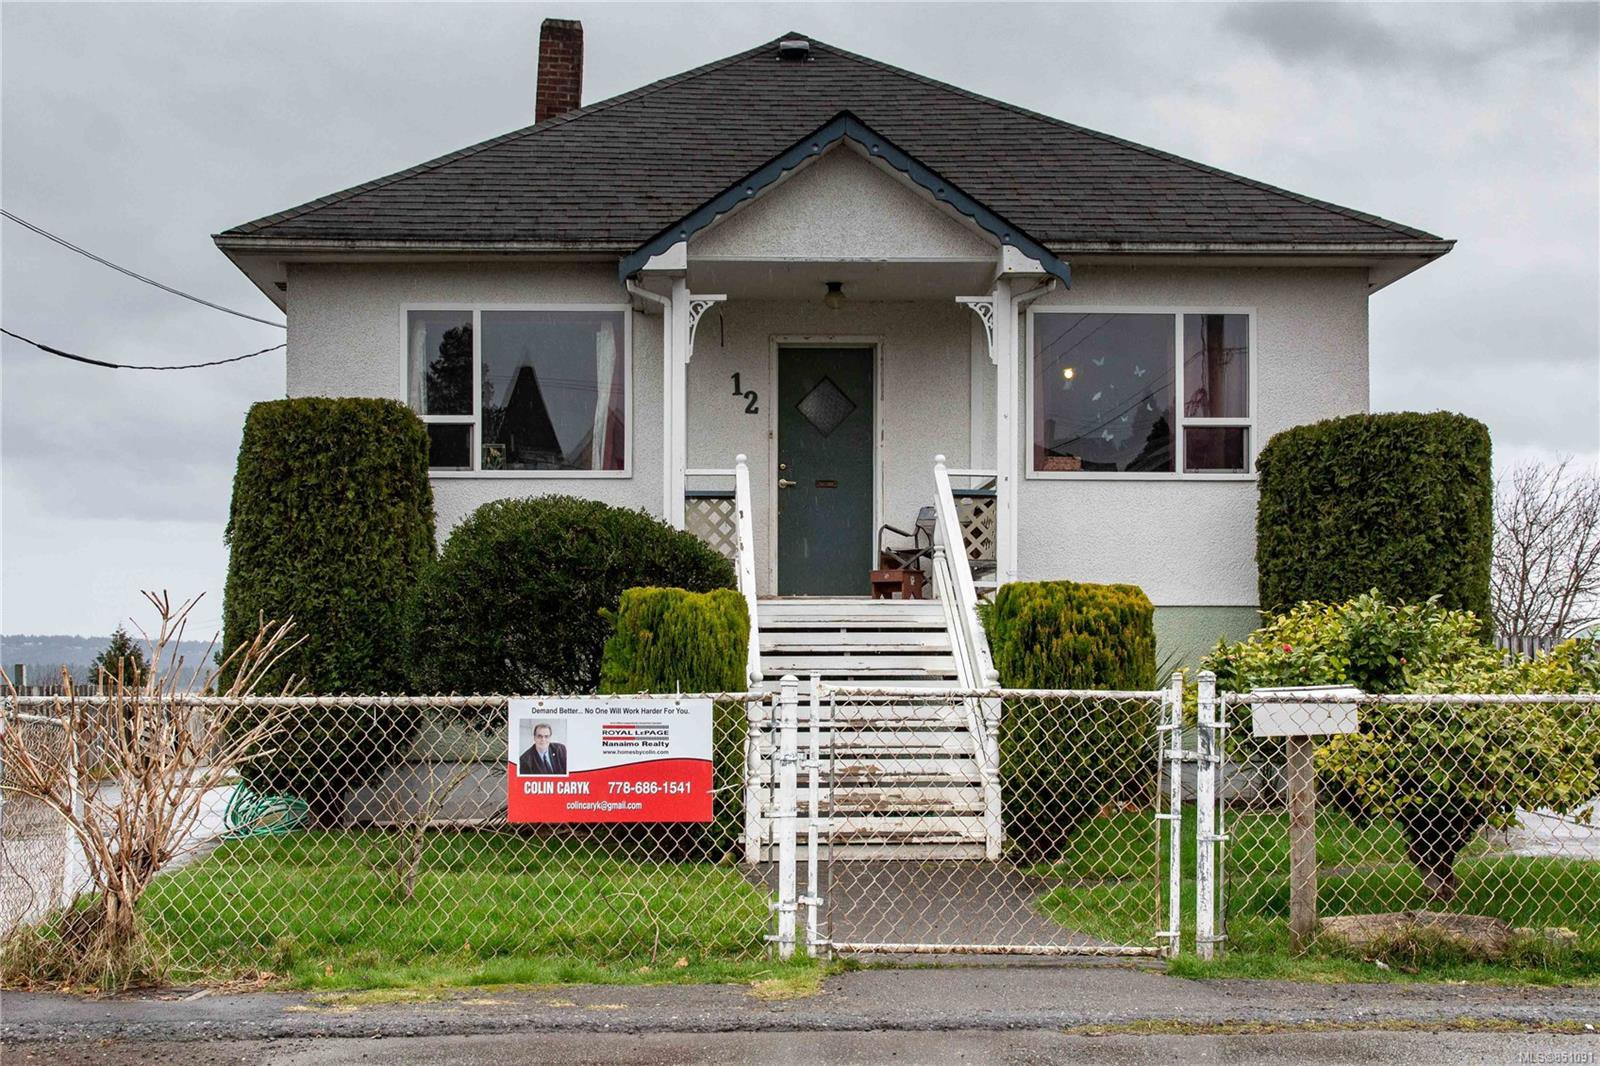 Main Photo: 12 Gillespie St in : Na South Nanaimo House for sale (Nanaimo)  : MLS®# 851091